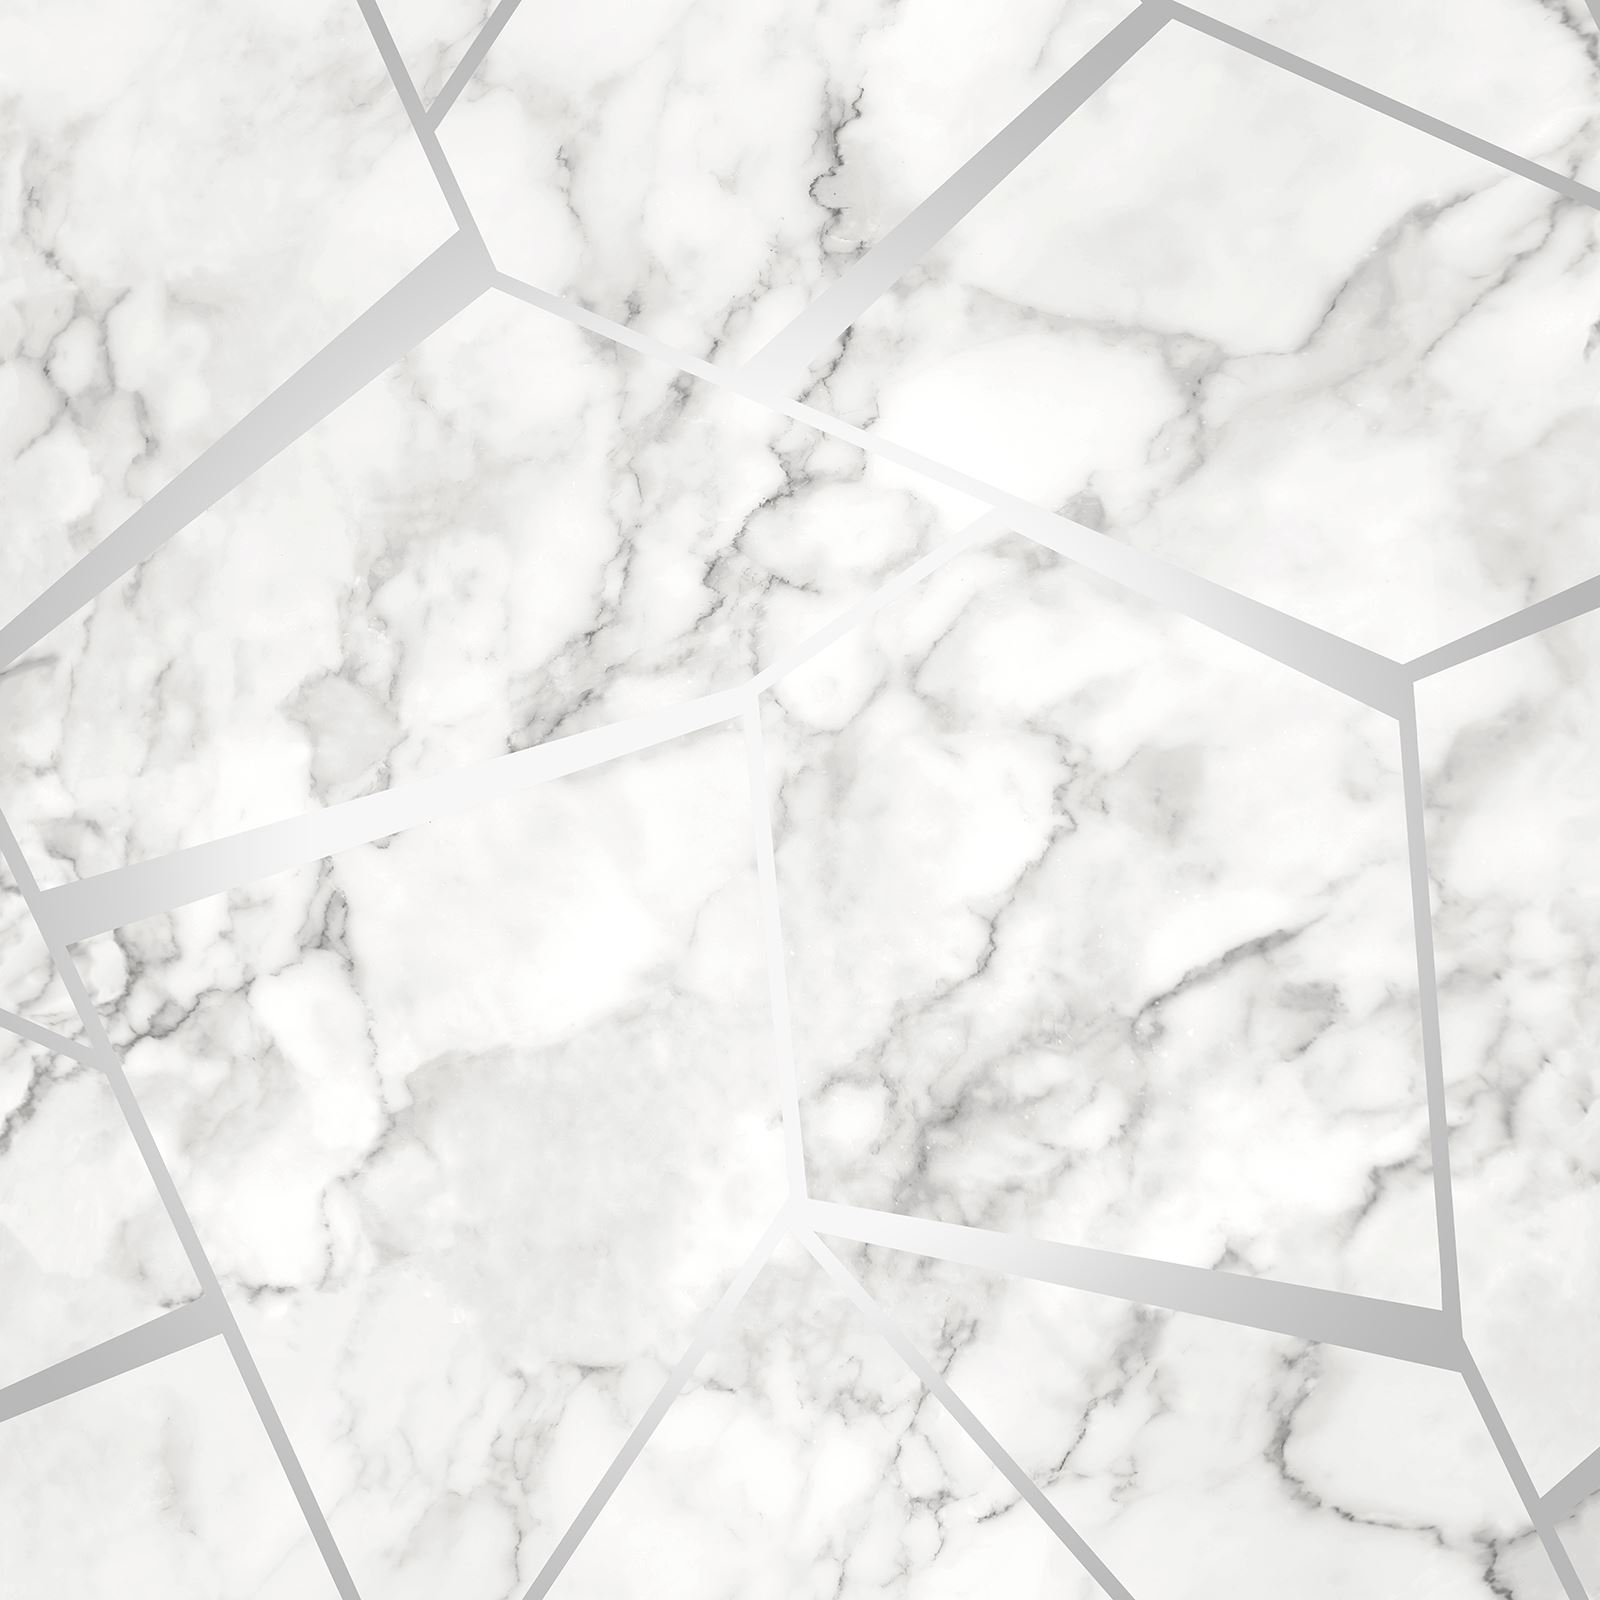 Simple Wallpaper Marble Copper - 37c991f6-dab2-4b3f-b64a-c2b63053e497  Pic_632793.jpg